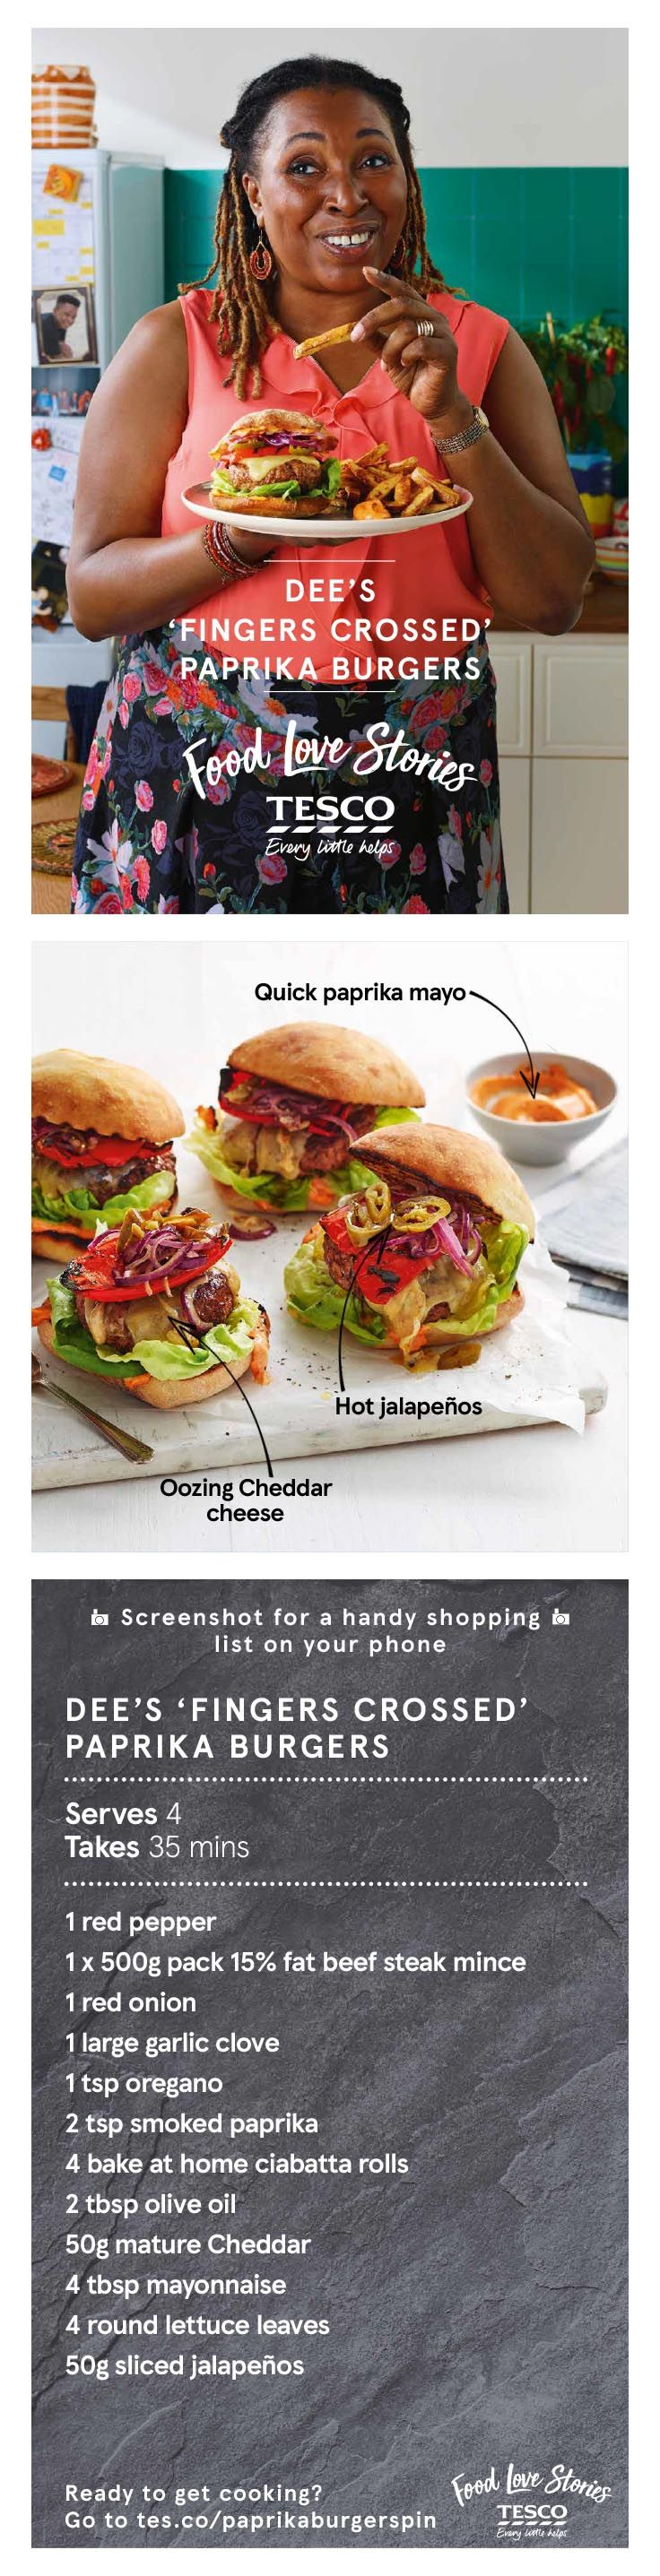 This homemade paprika burger recipe is full of smoky flavour, perfect as a real treat. Serve in ciabatta rolls with crunchy salad and charred peppers, or pop them on the barbecue for a summer burger recipe with a twist.   Tesco